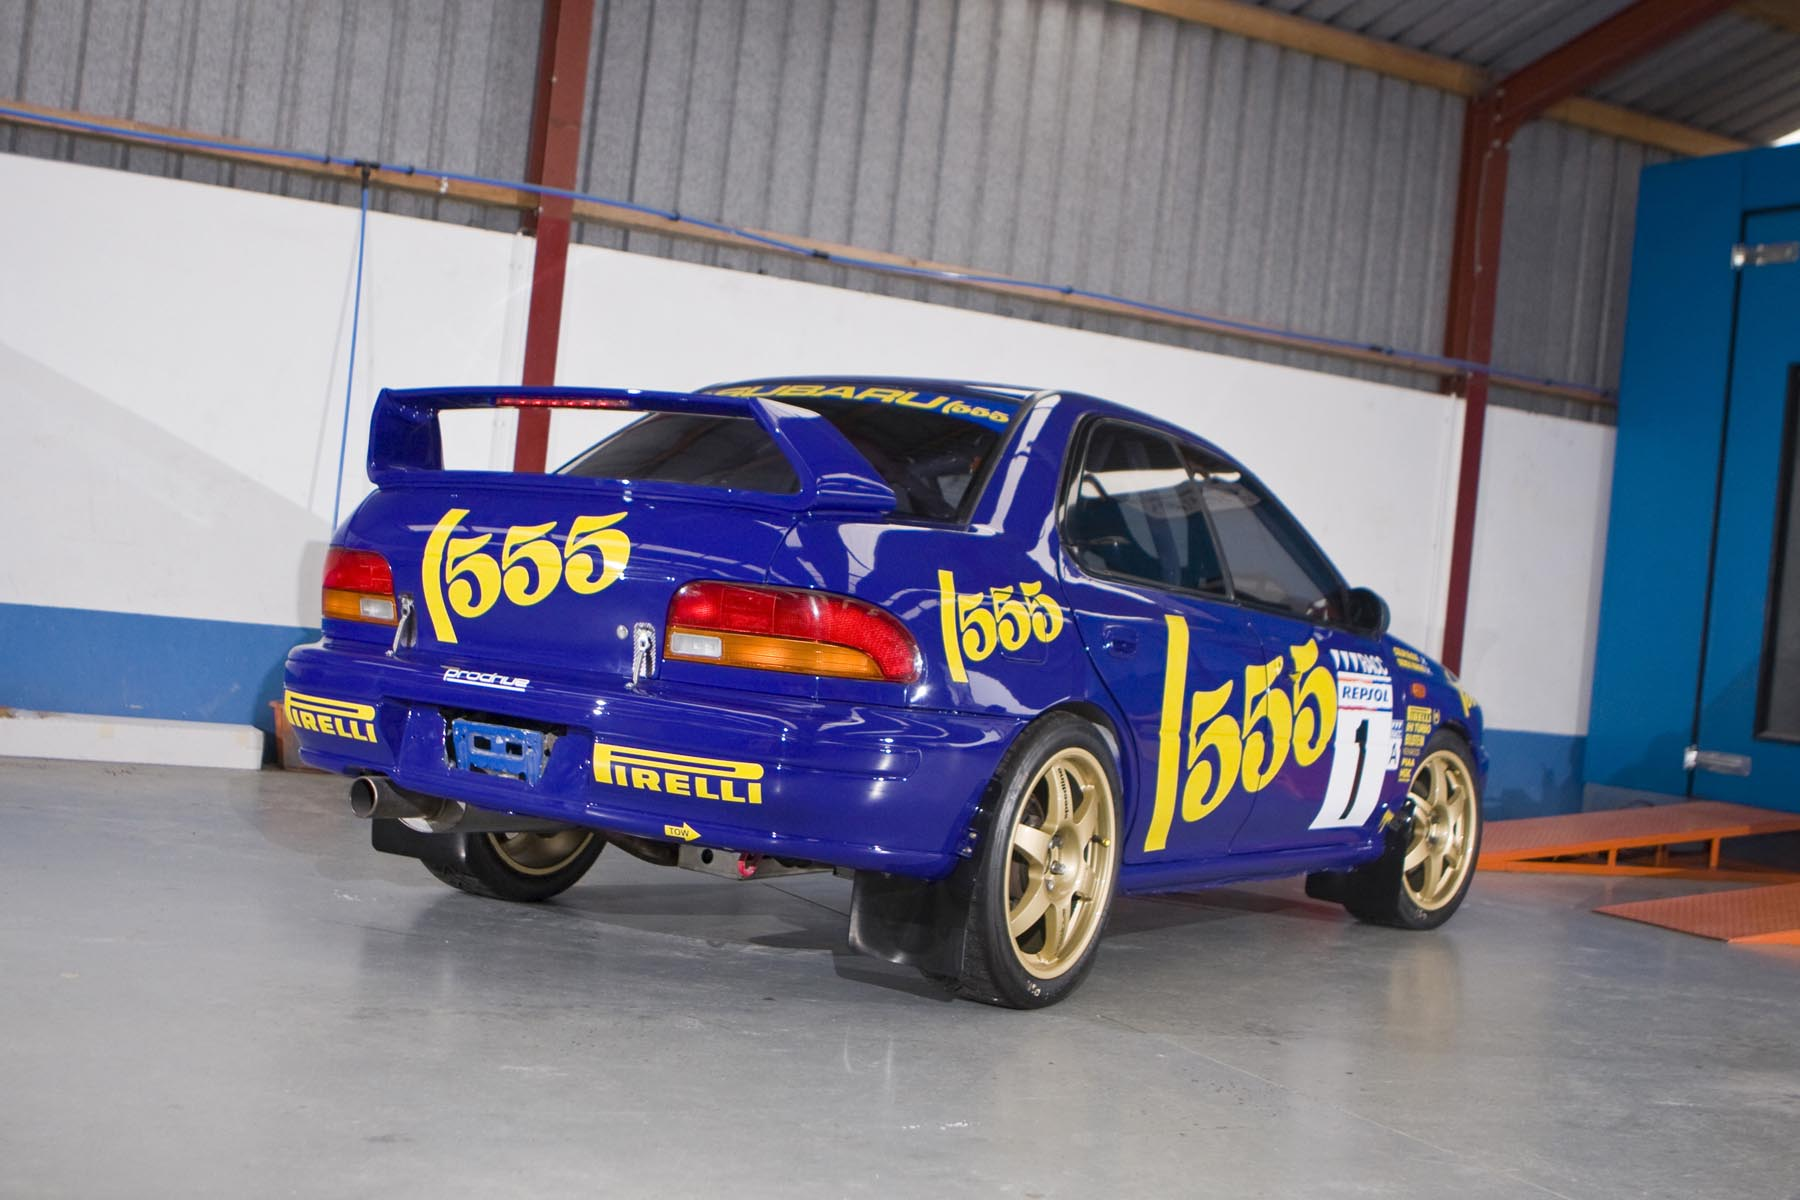 A REPLICA OF A RALLYING ICON | Used Cars NI Blog